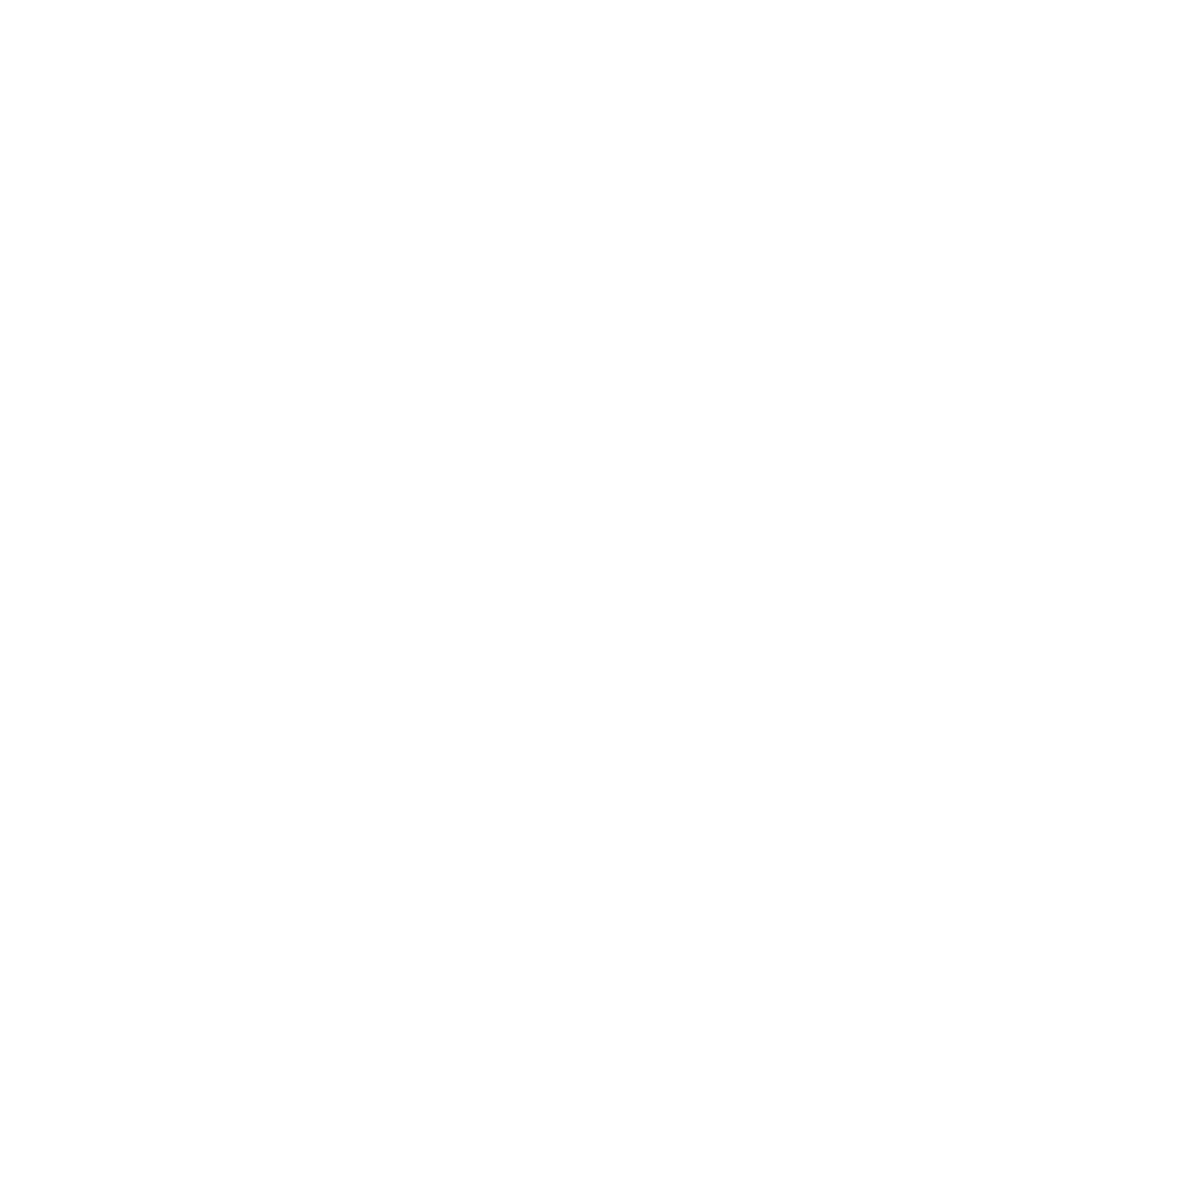 Drizzle Apparel Co. | An eco-friendly clothing company and social enterprise